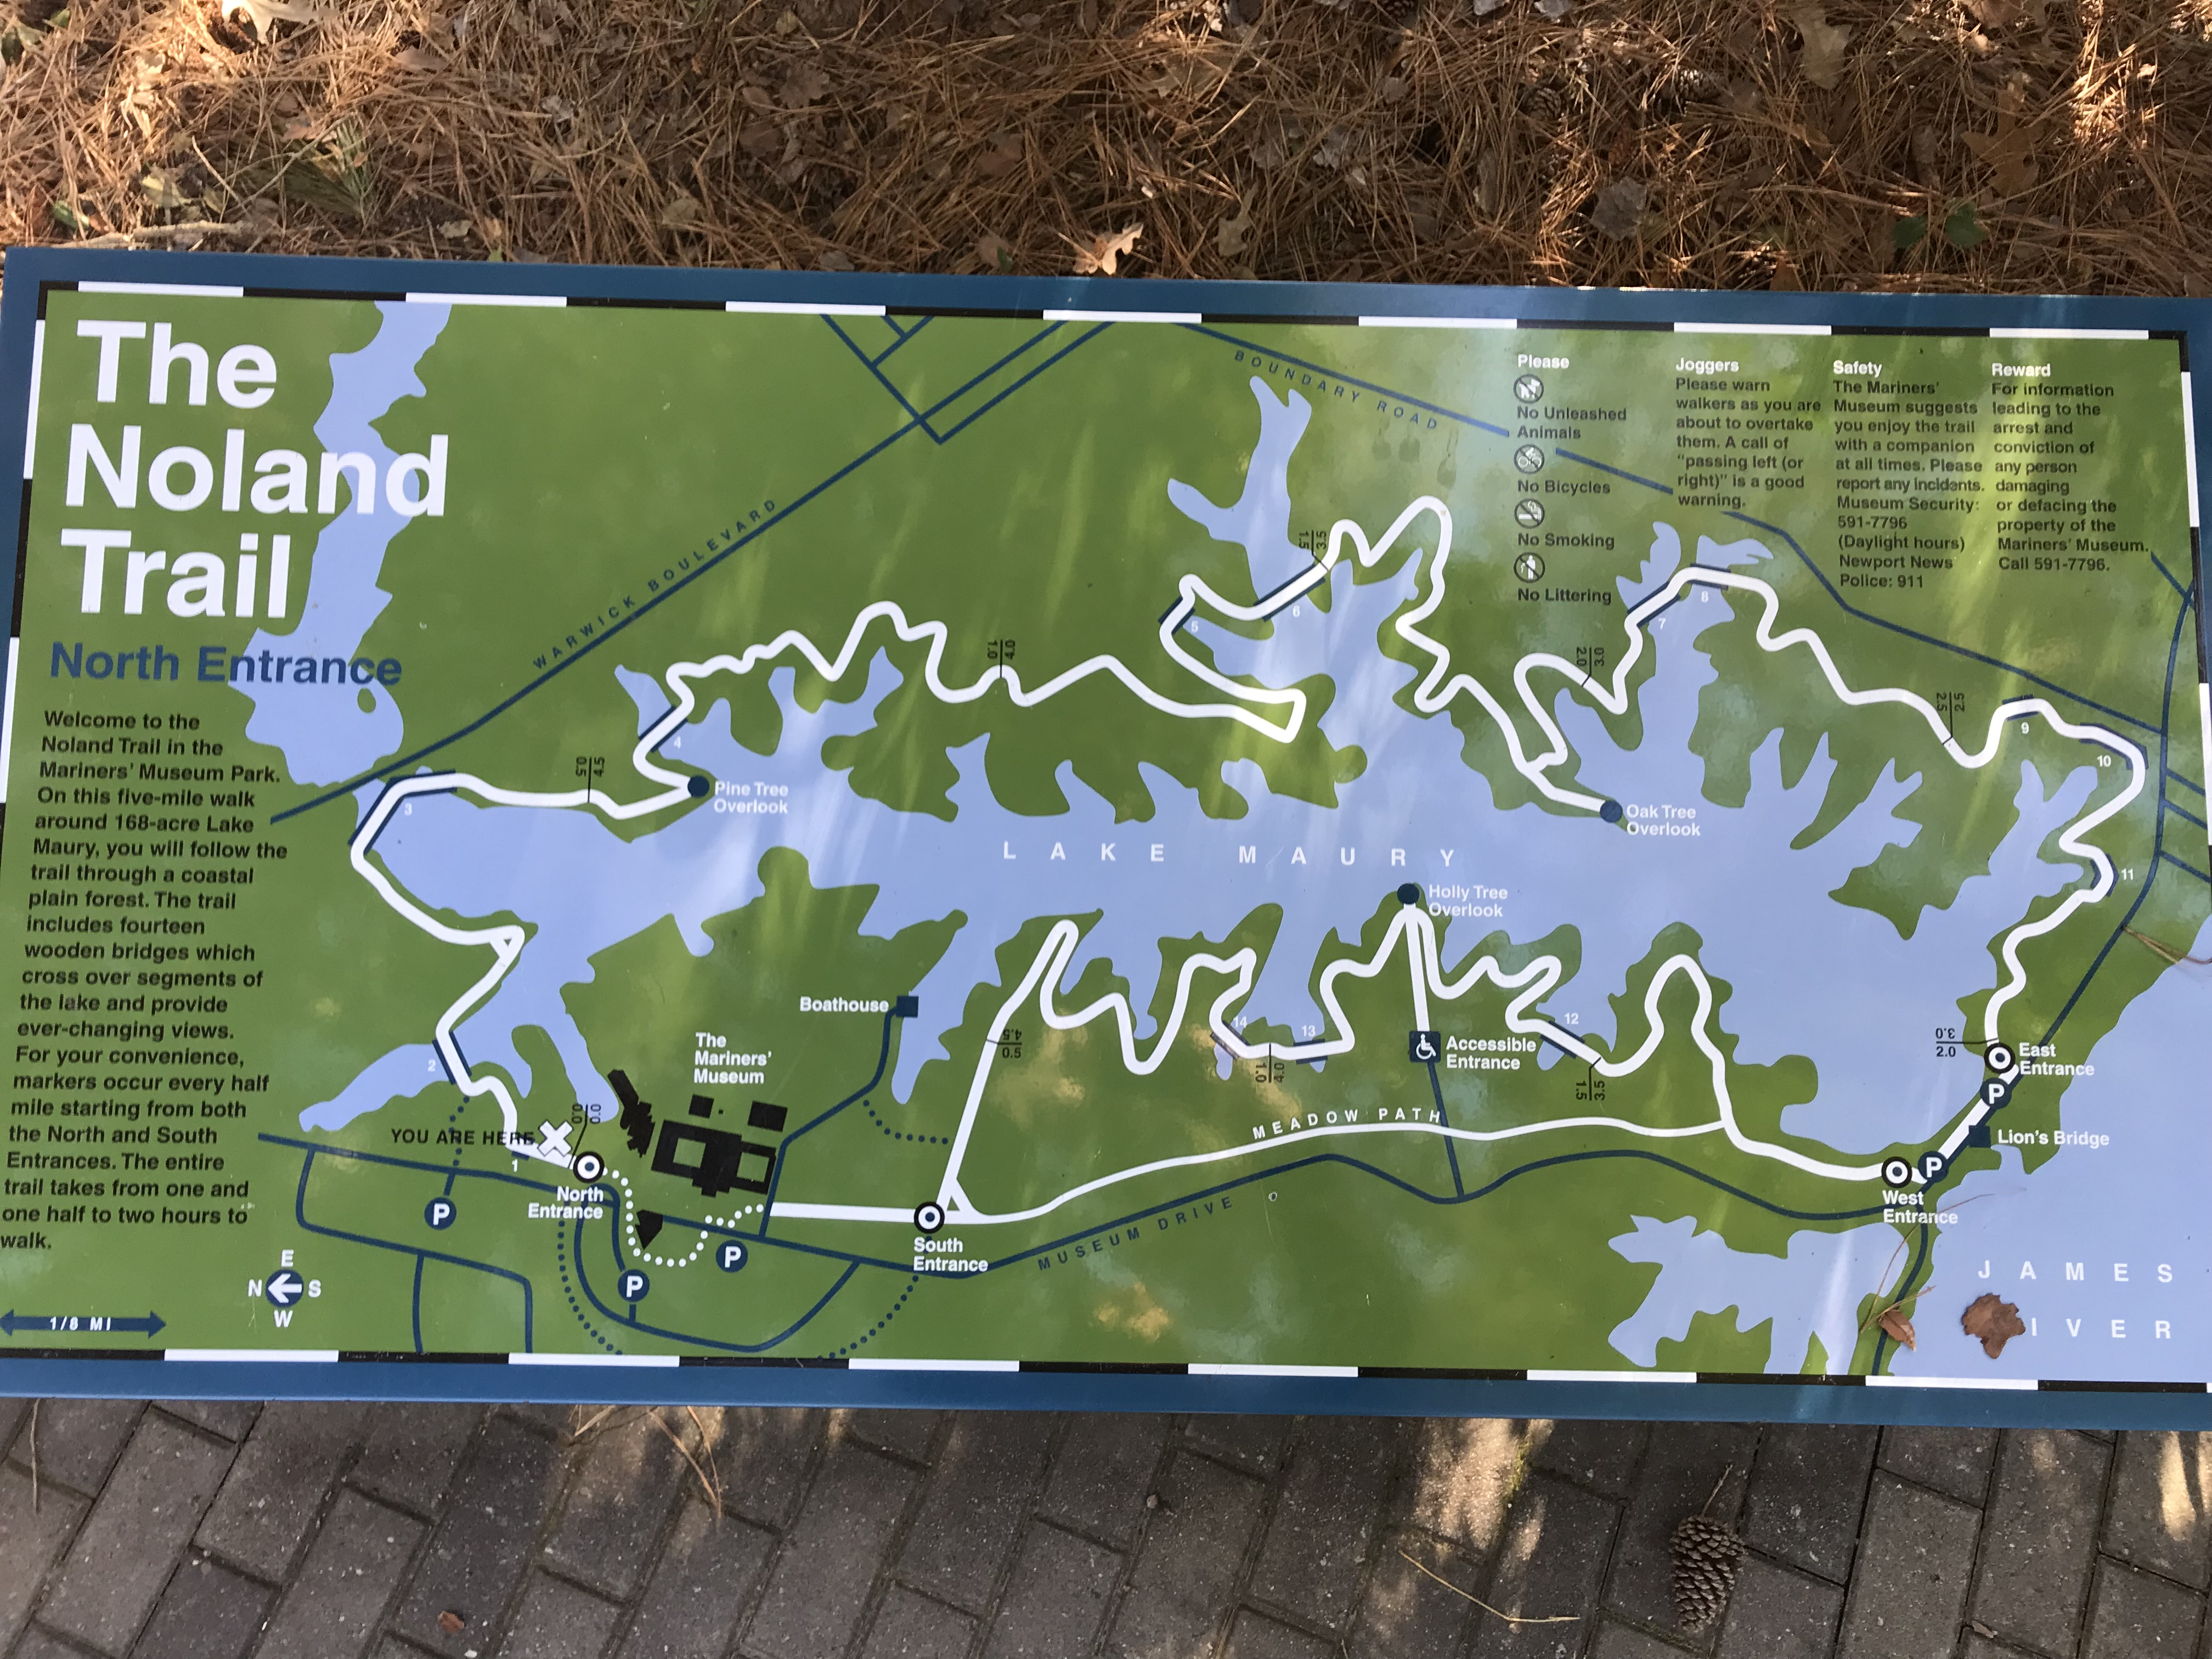 Photo of a Noland Trail Map